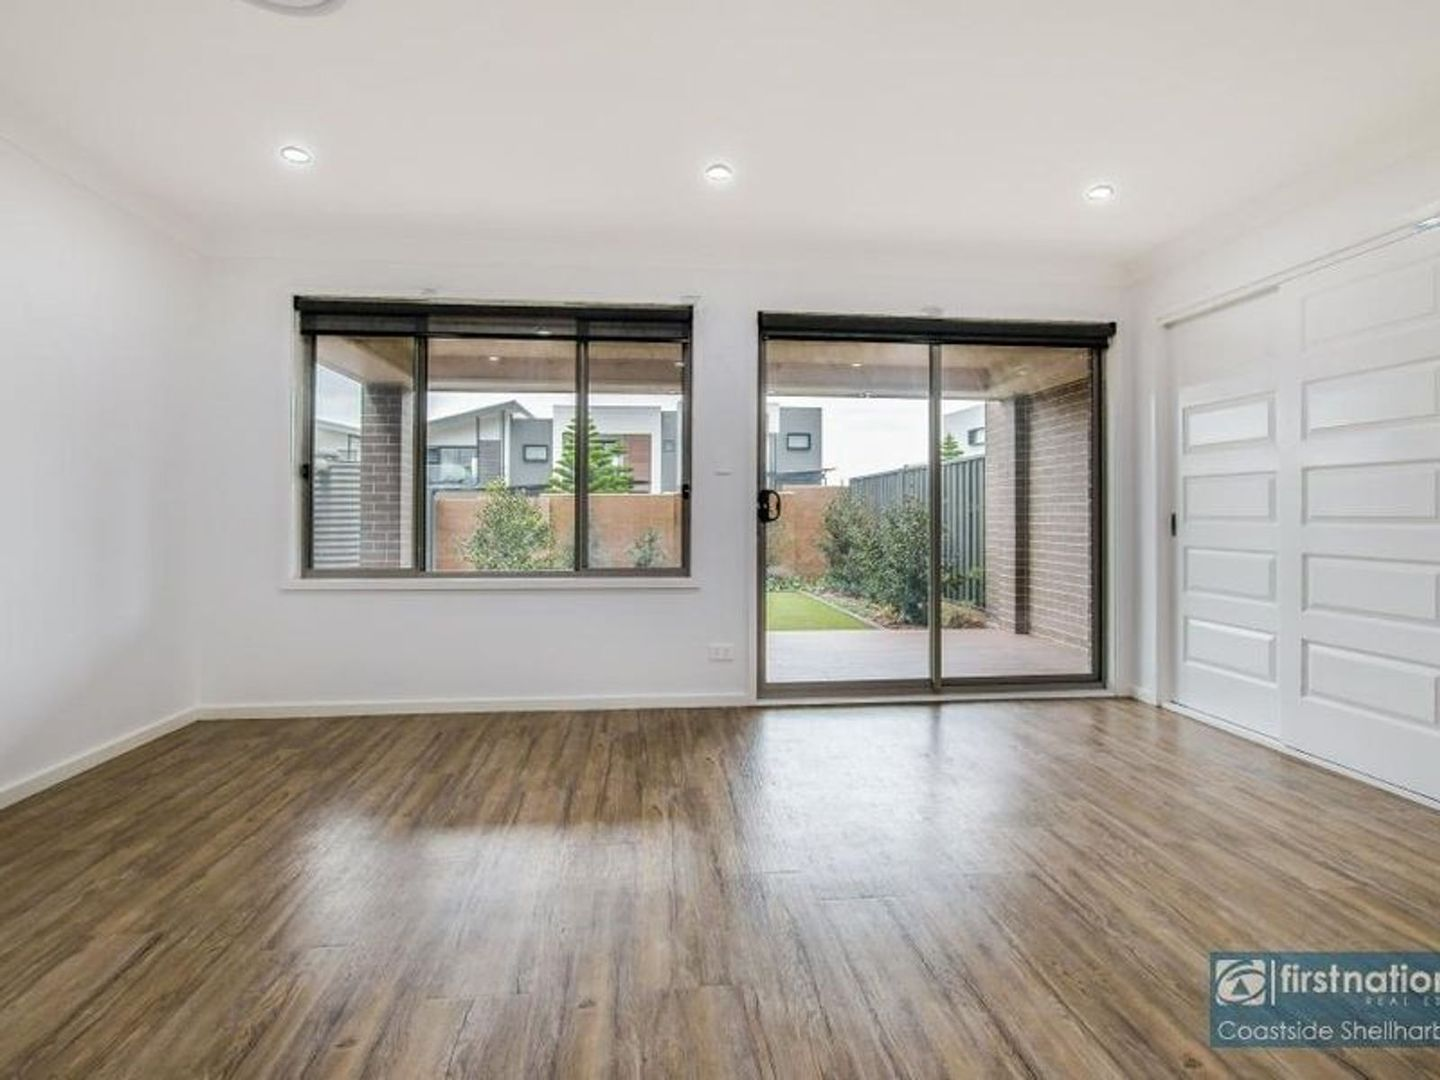 26A Cowries Avenue, Shell Cove NSW 2529, Image 1